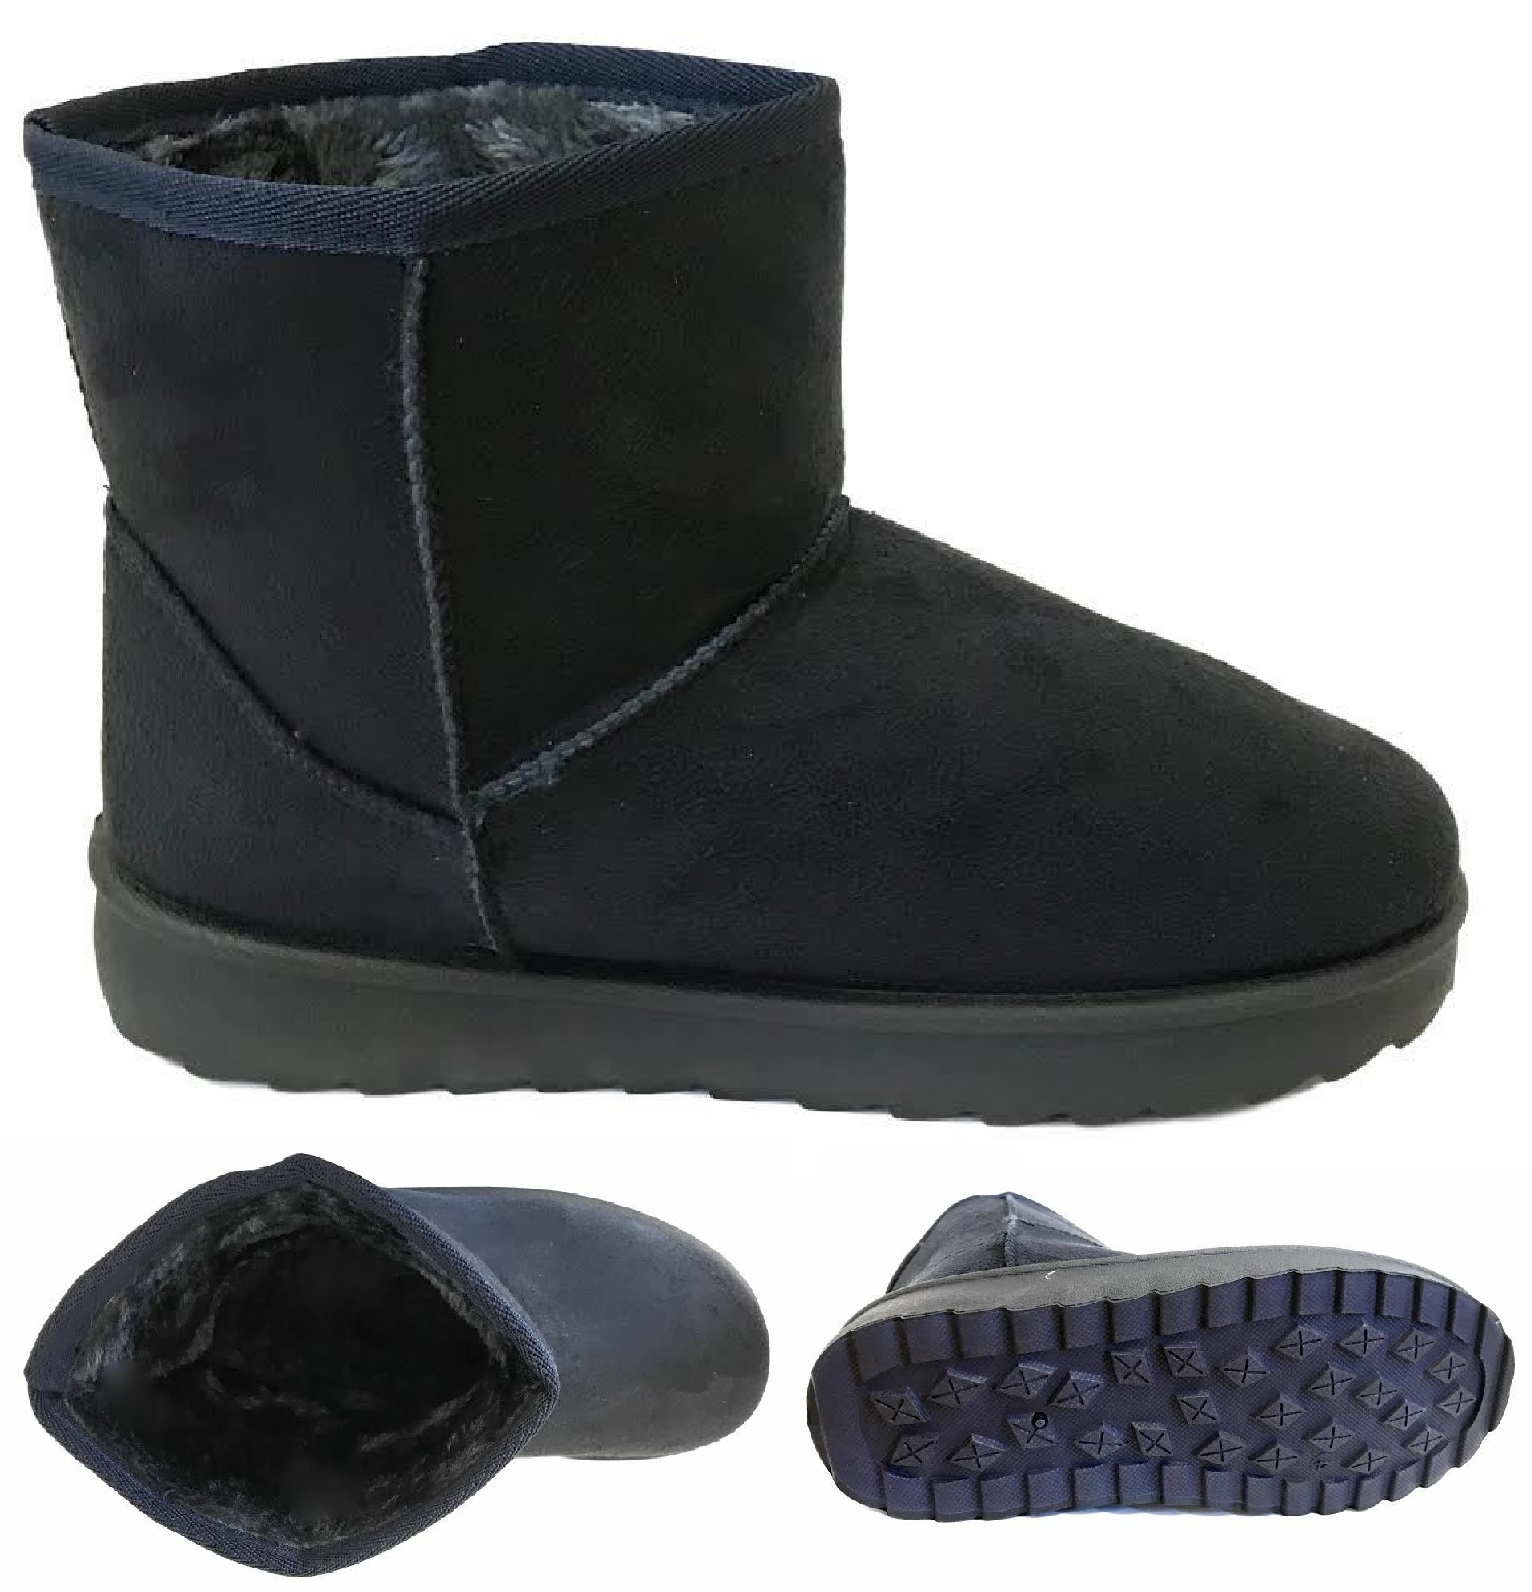 WOMENS LADIES FLAT WARM WINTER FUR LINED ANKLE SNUGG HUGG SHOES BOOTS SIZE 3-8